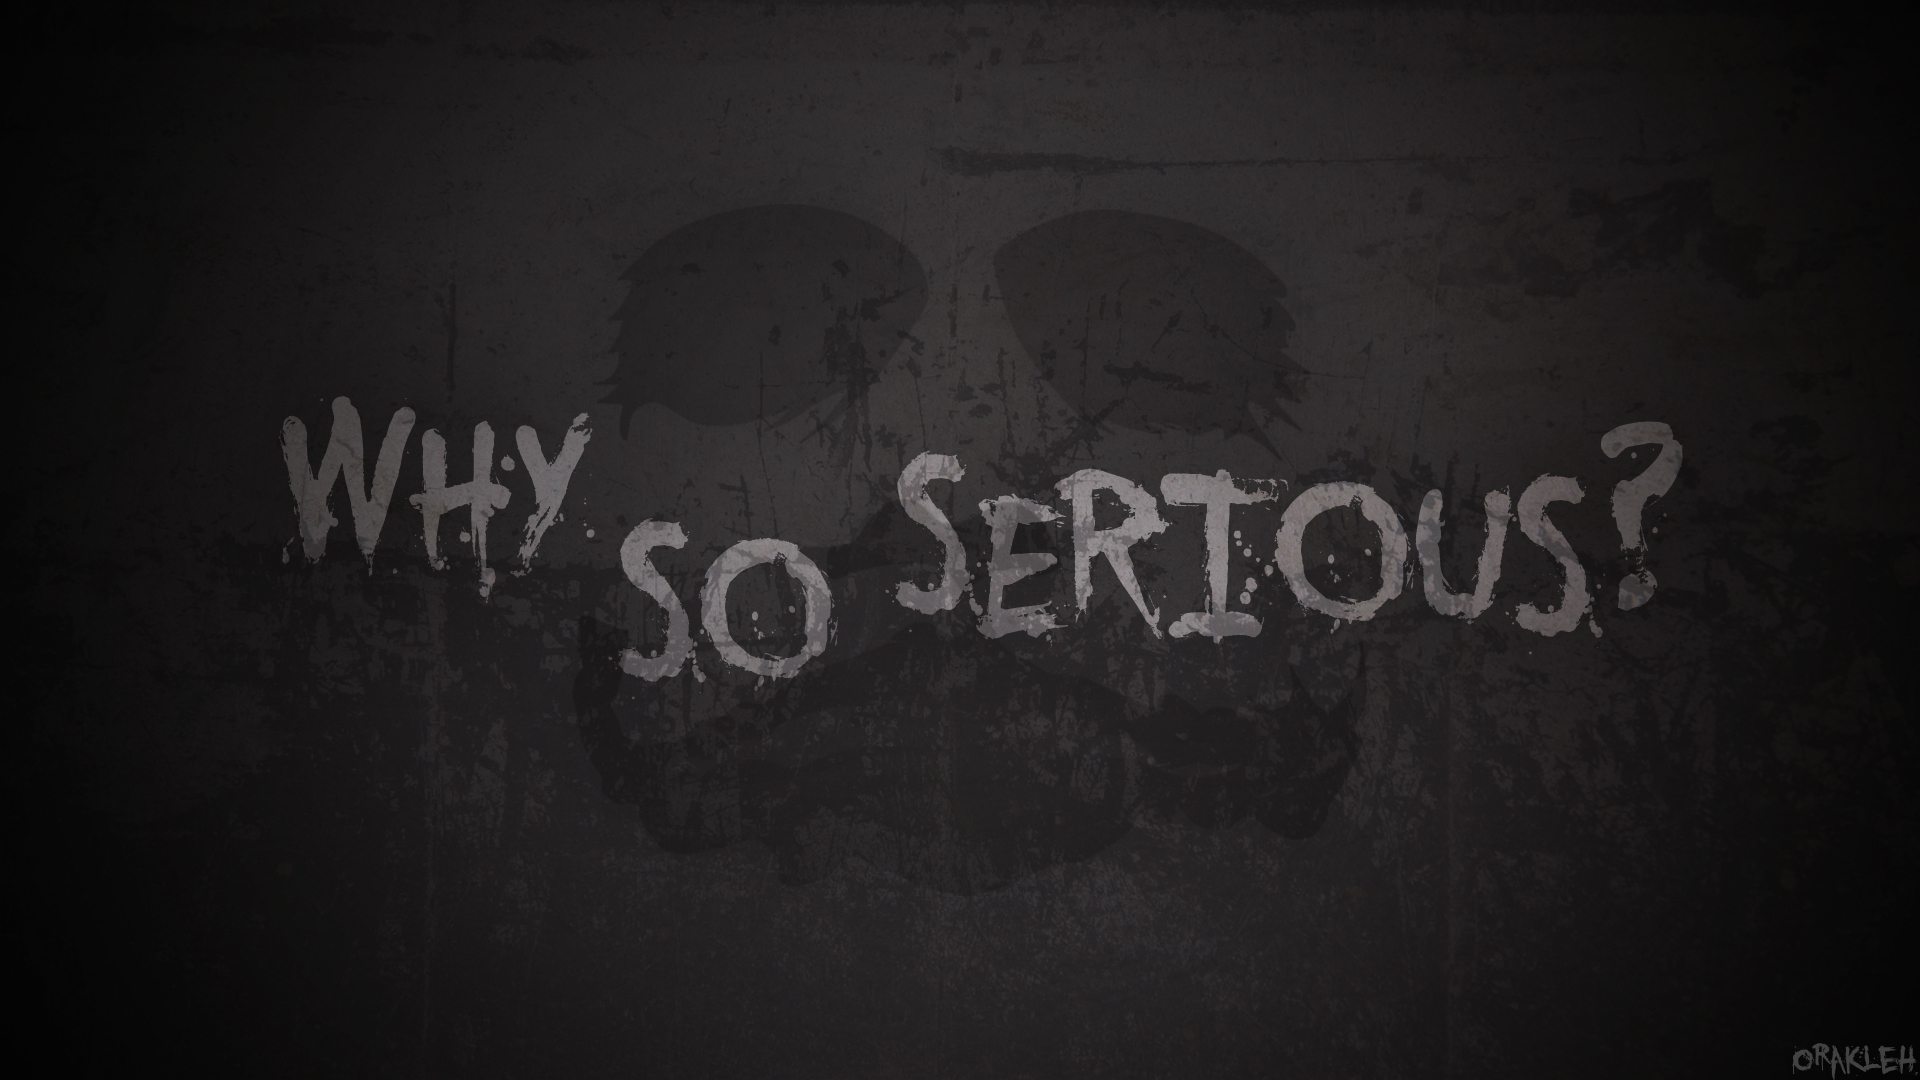 the joker wallpaper why so serious images pictures becuo